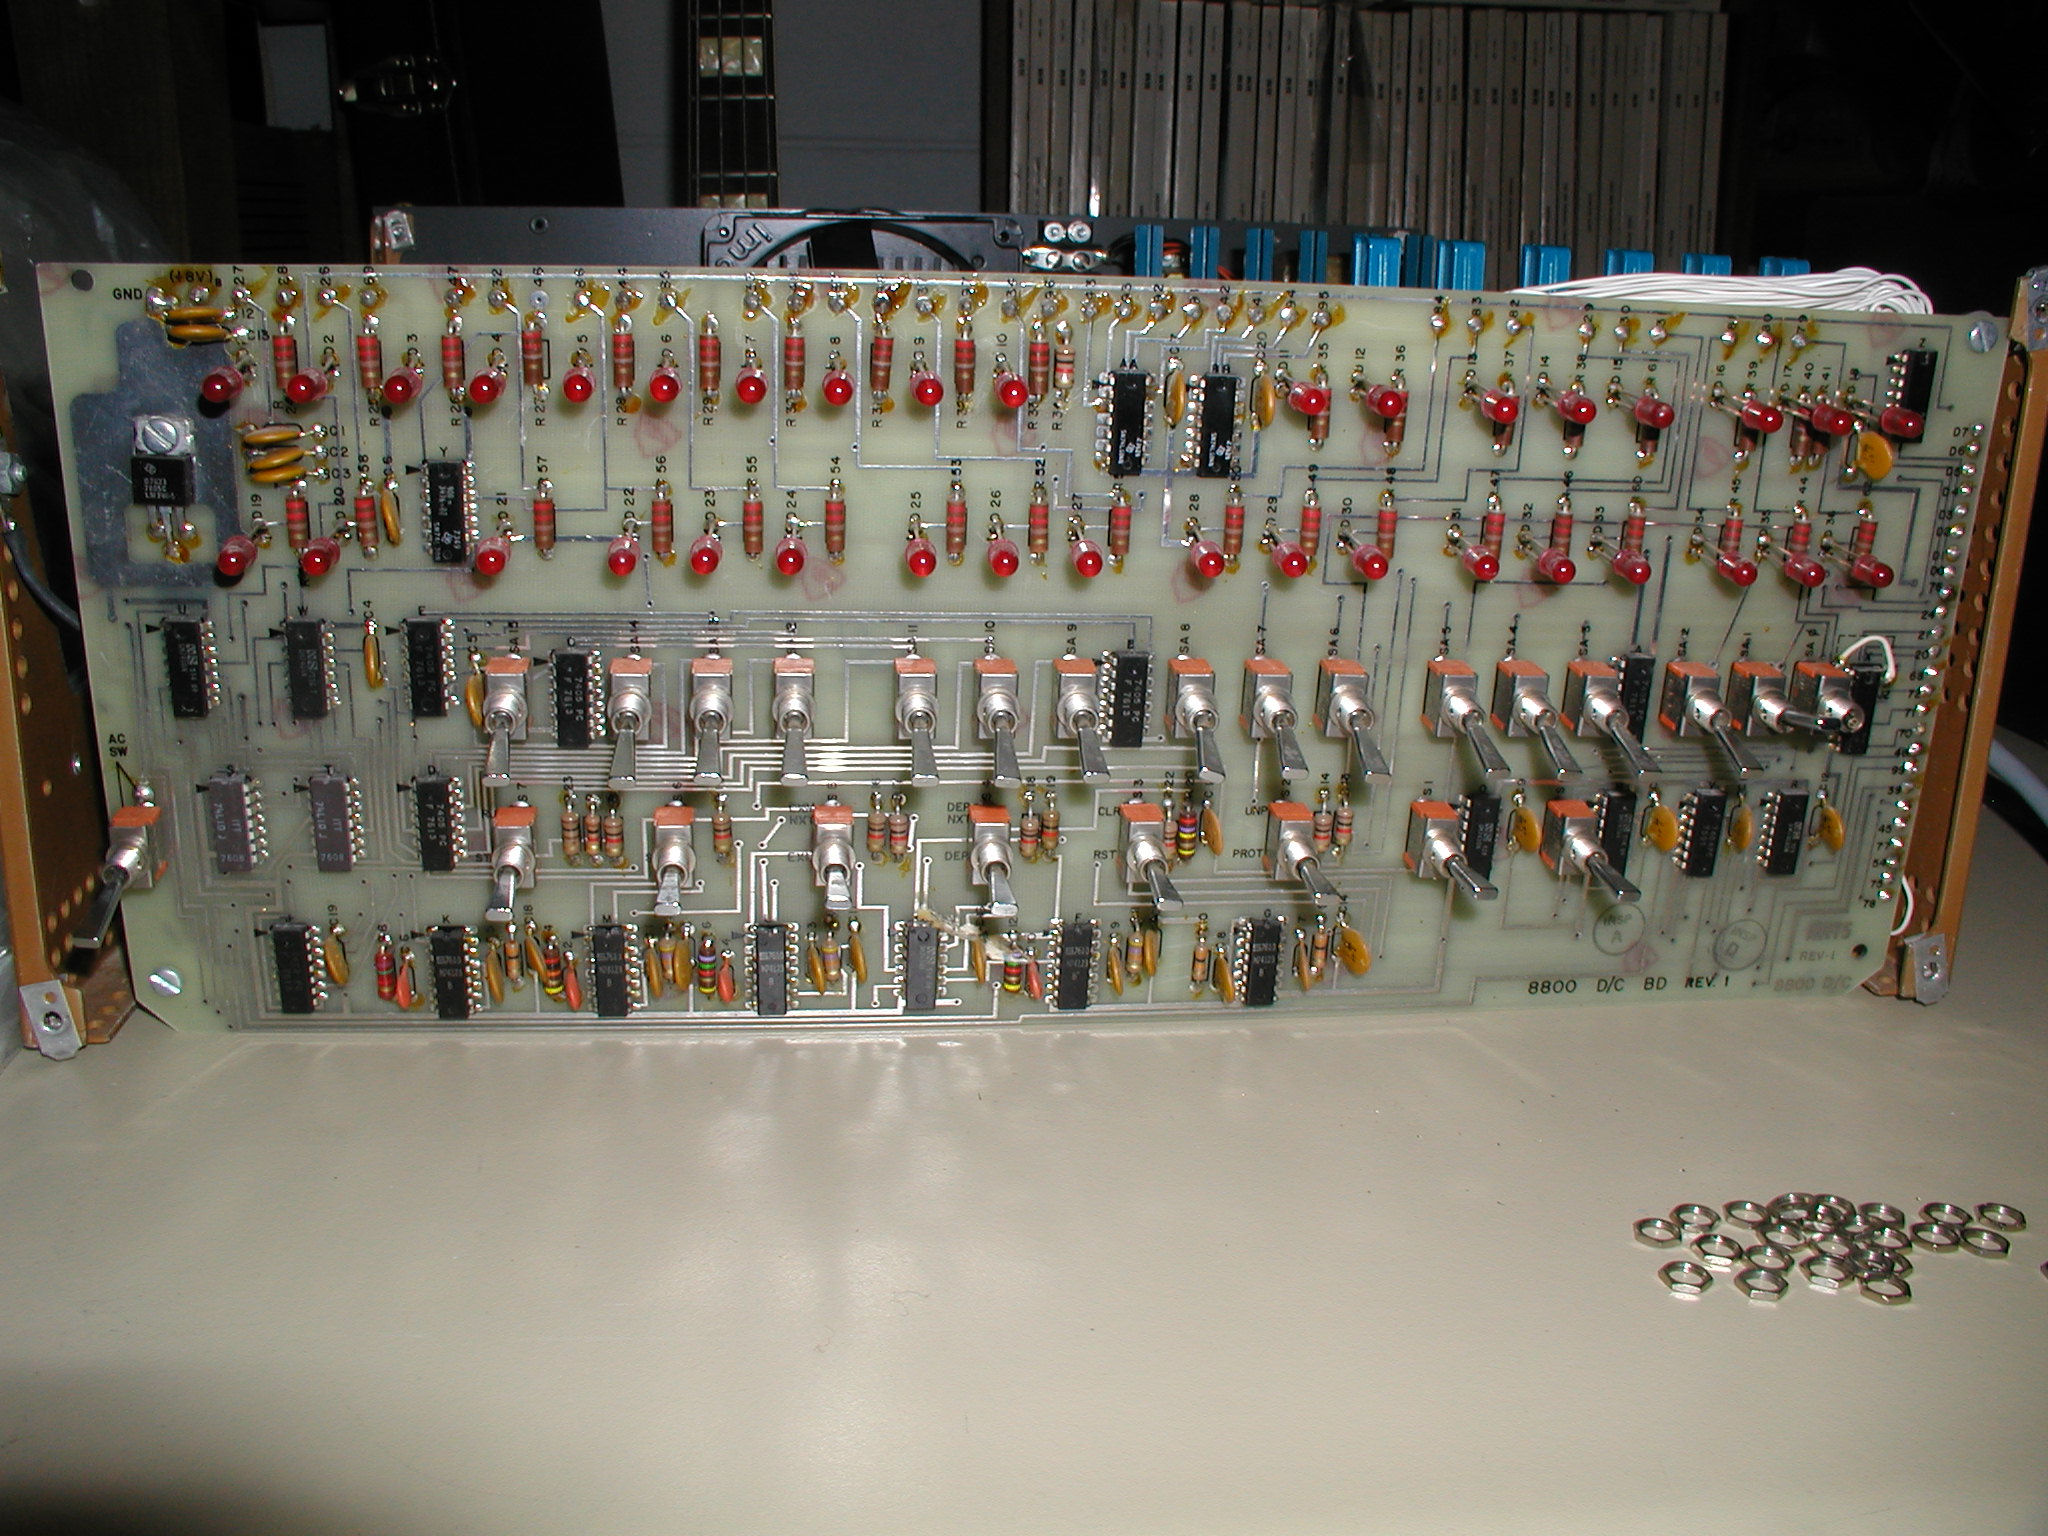 Altair 8800 Front Panel Wiring S100 Diagram Referring To This Photo